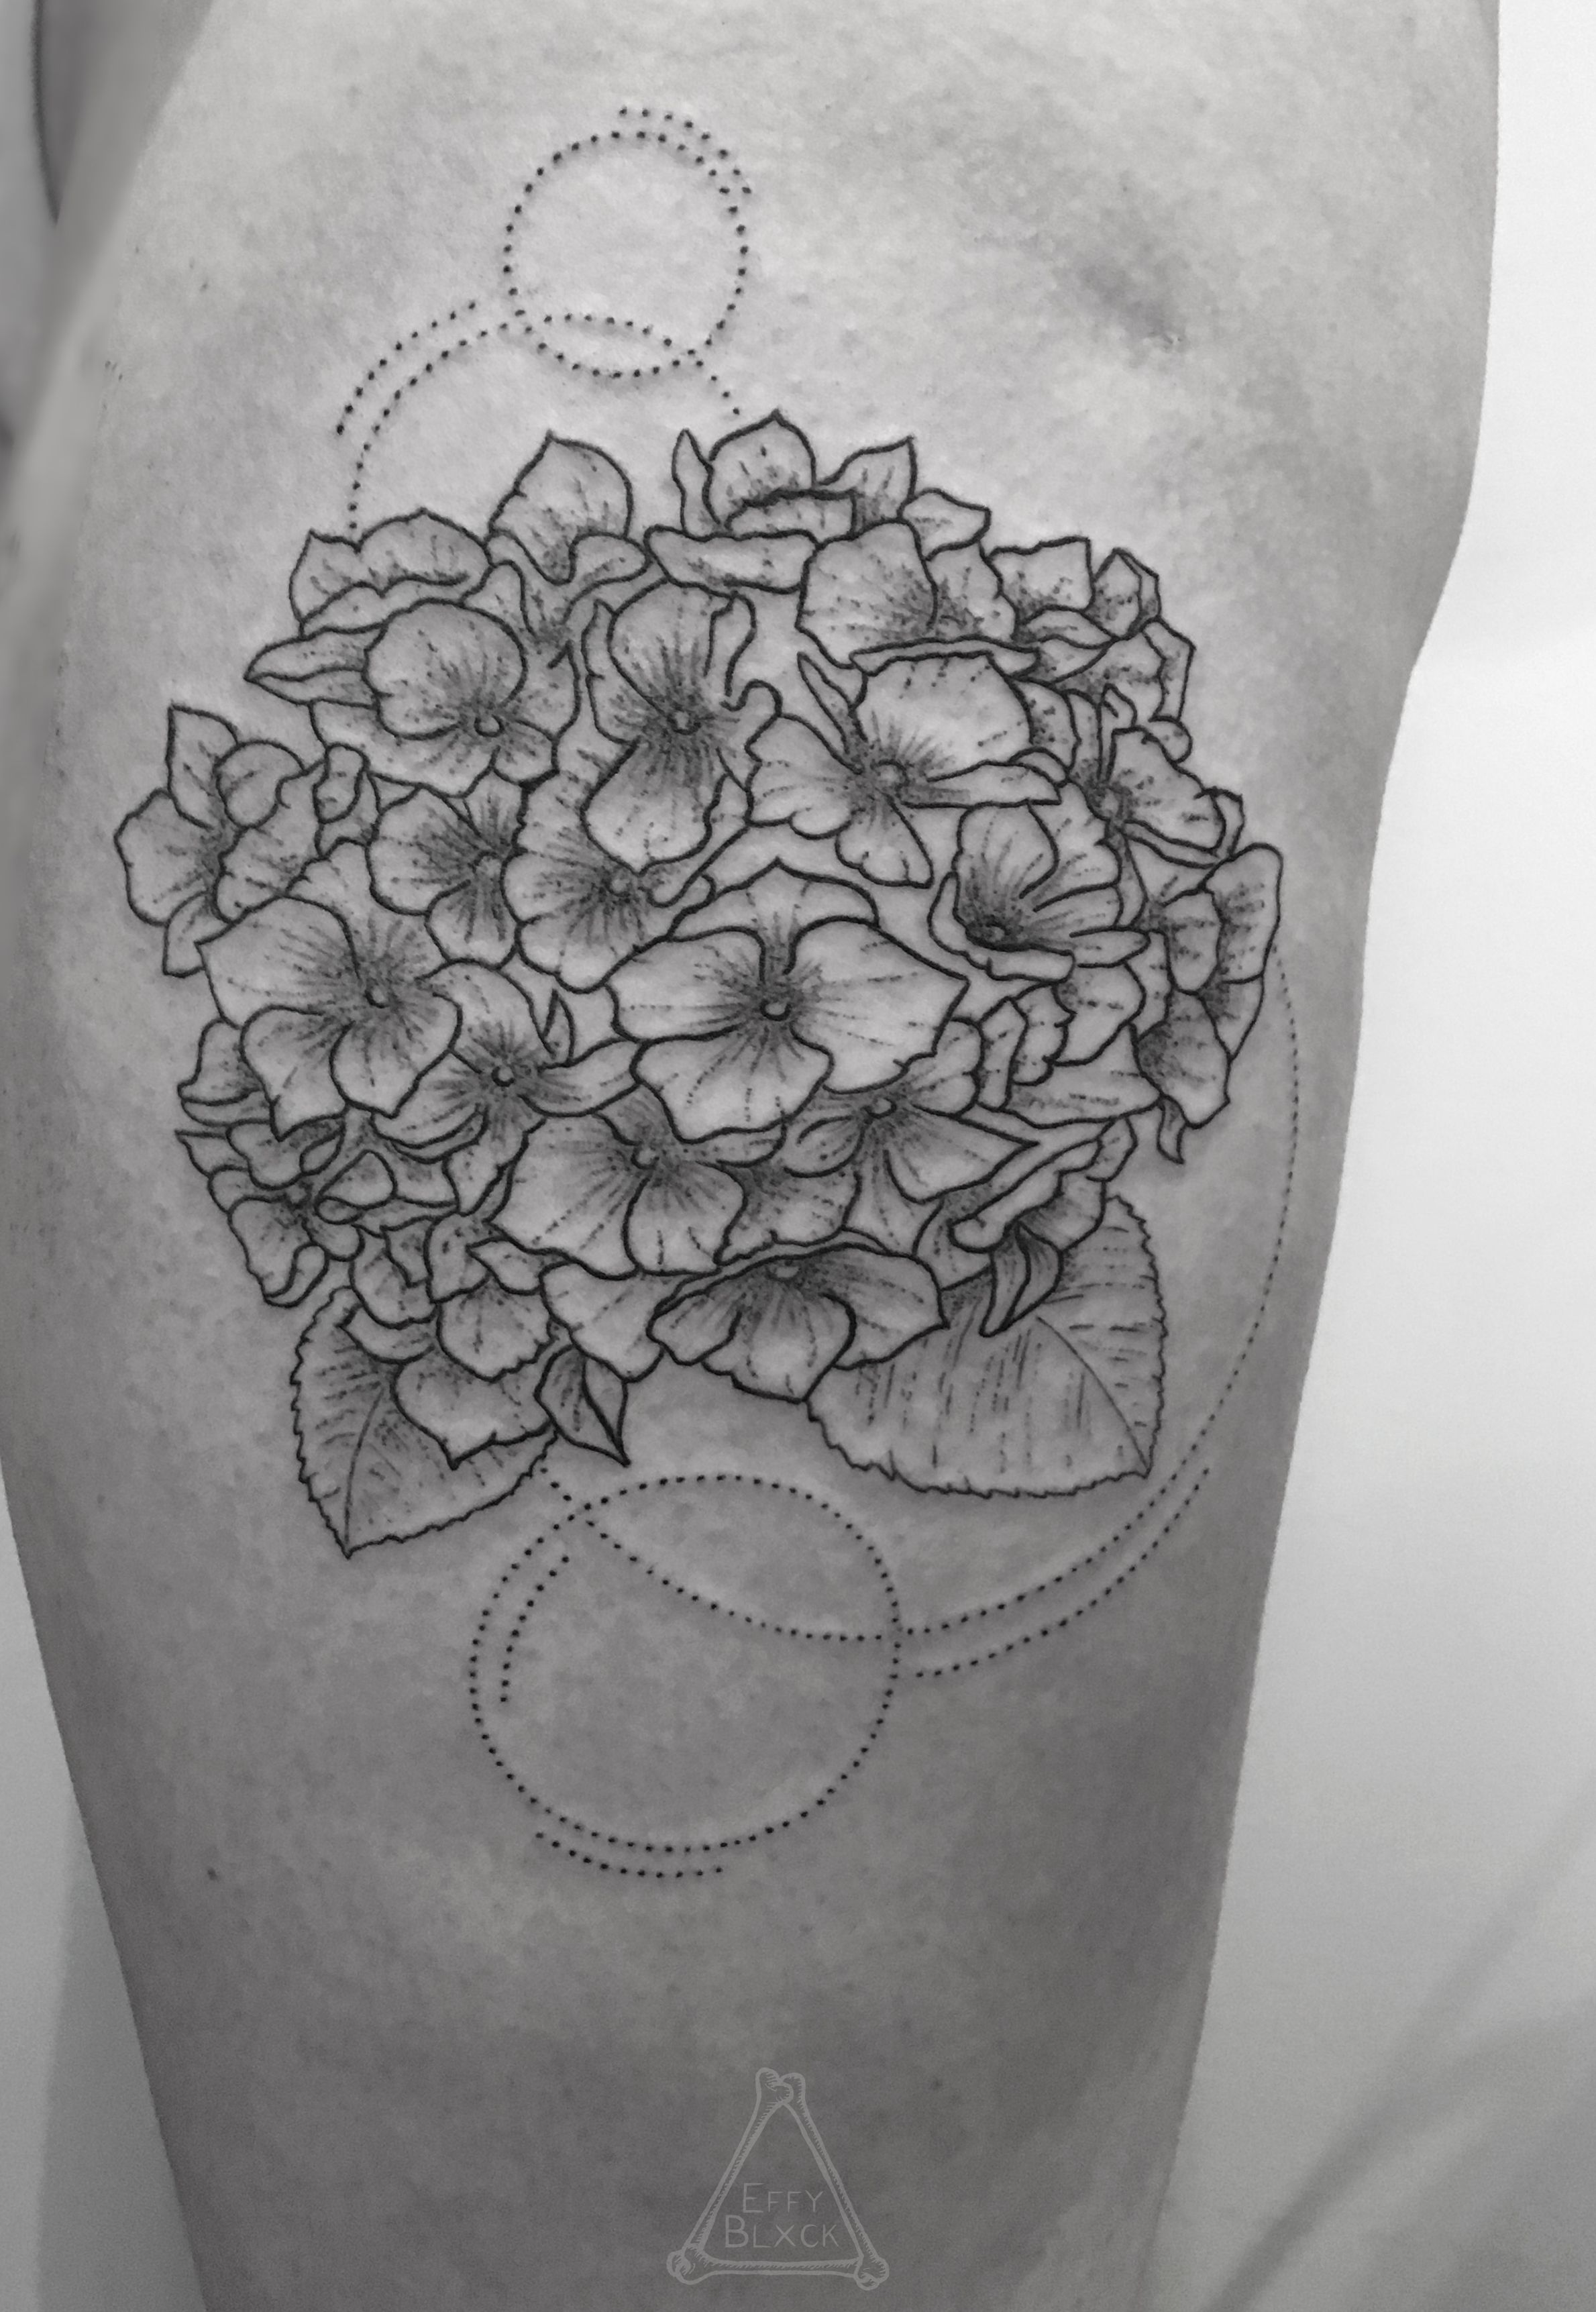 Hydrangea Tattoo Floral Tattoo Linework Dotworkers Darkartists Hydrangea Tattoo Tattoos Trendy Tattoos